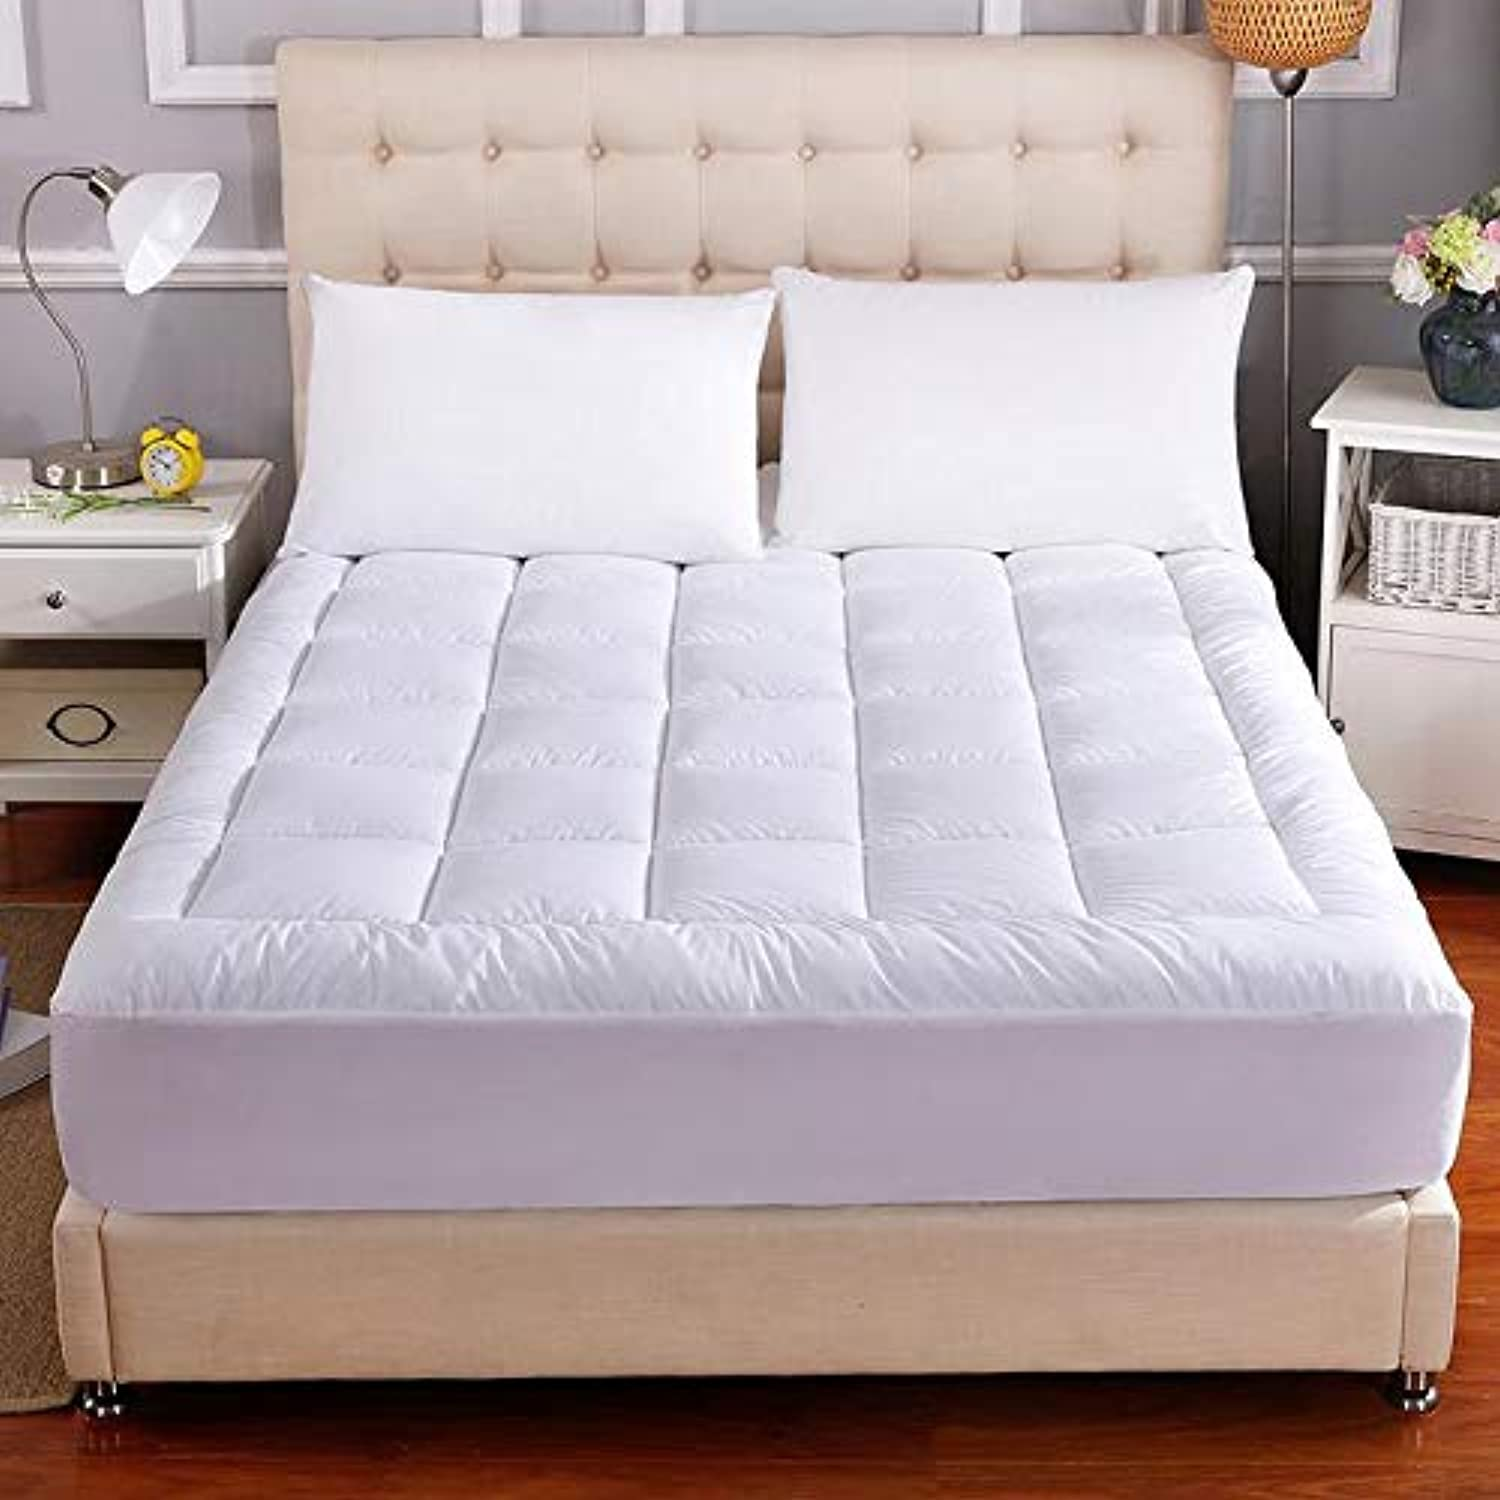 Baile Waterproof Mattress Pad Cover- Fitted Quilted 8-21Inch Deep Pocket Cotton Top Down Alternative Filling Mattress Topper Queen CK72x84